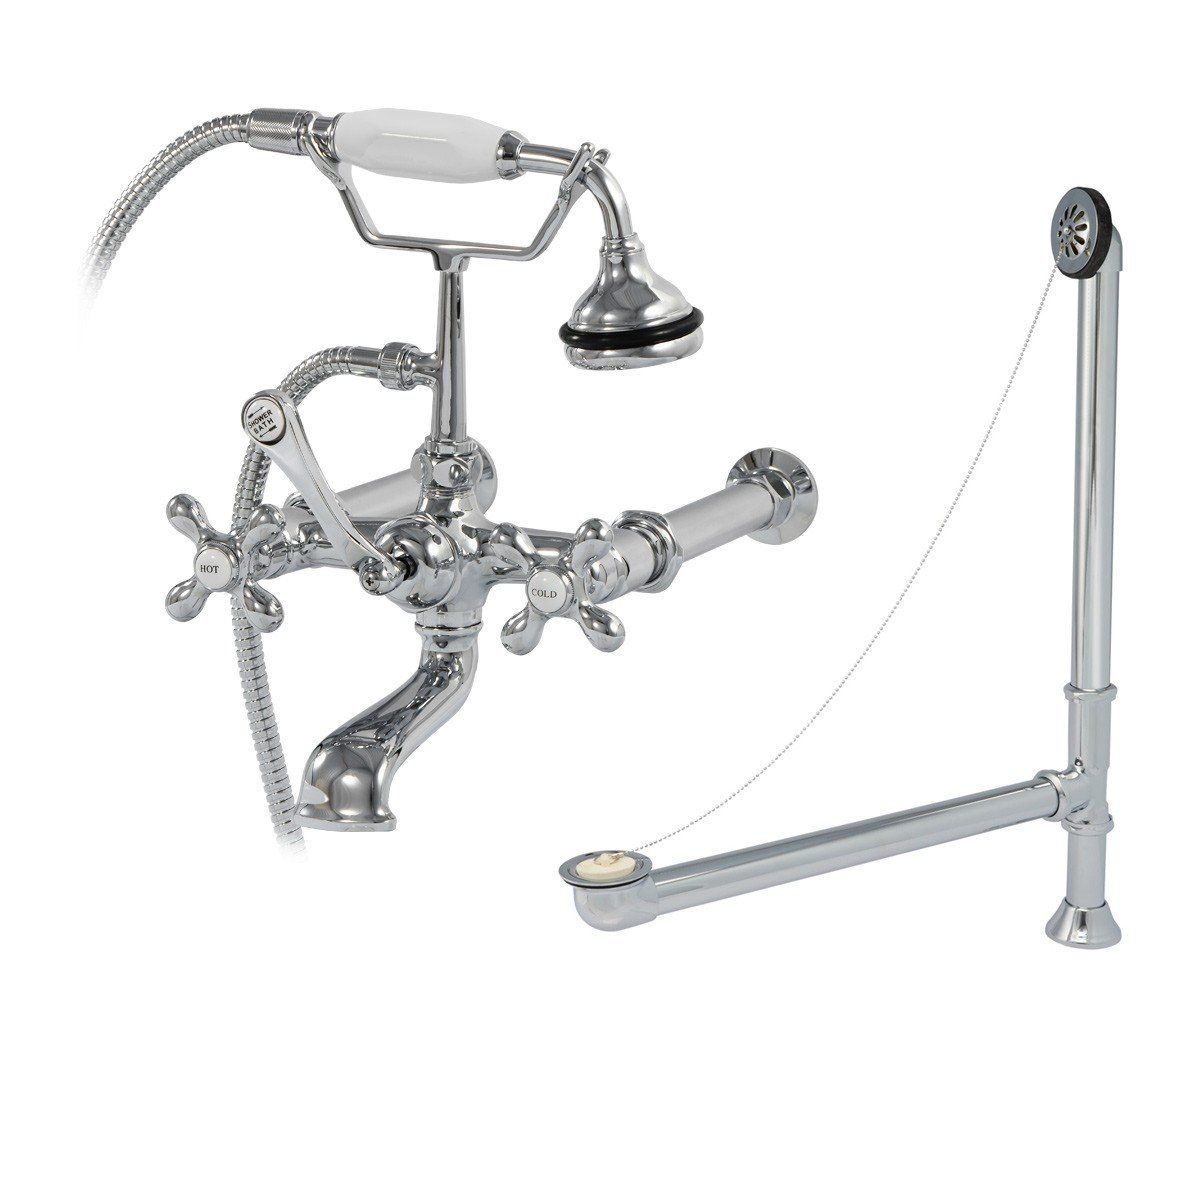 Bathroom Wall Mount English Telephone Clawfoot Tub Faucet Complete